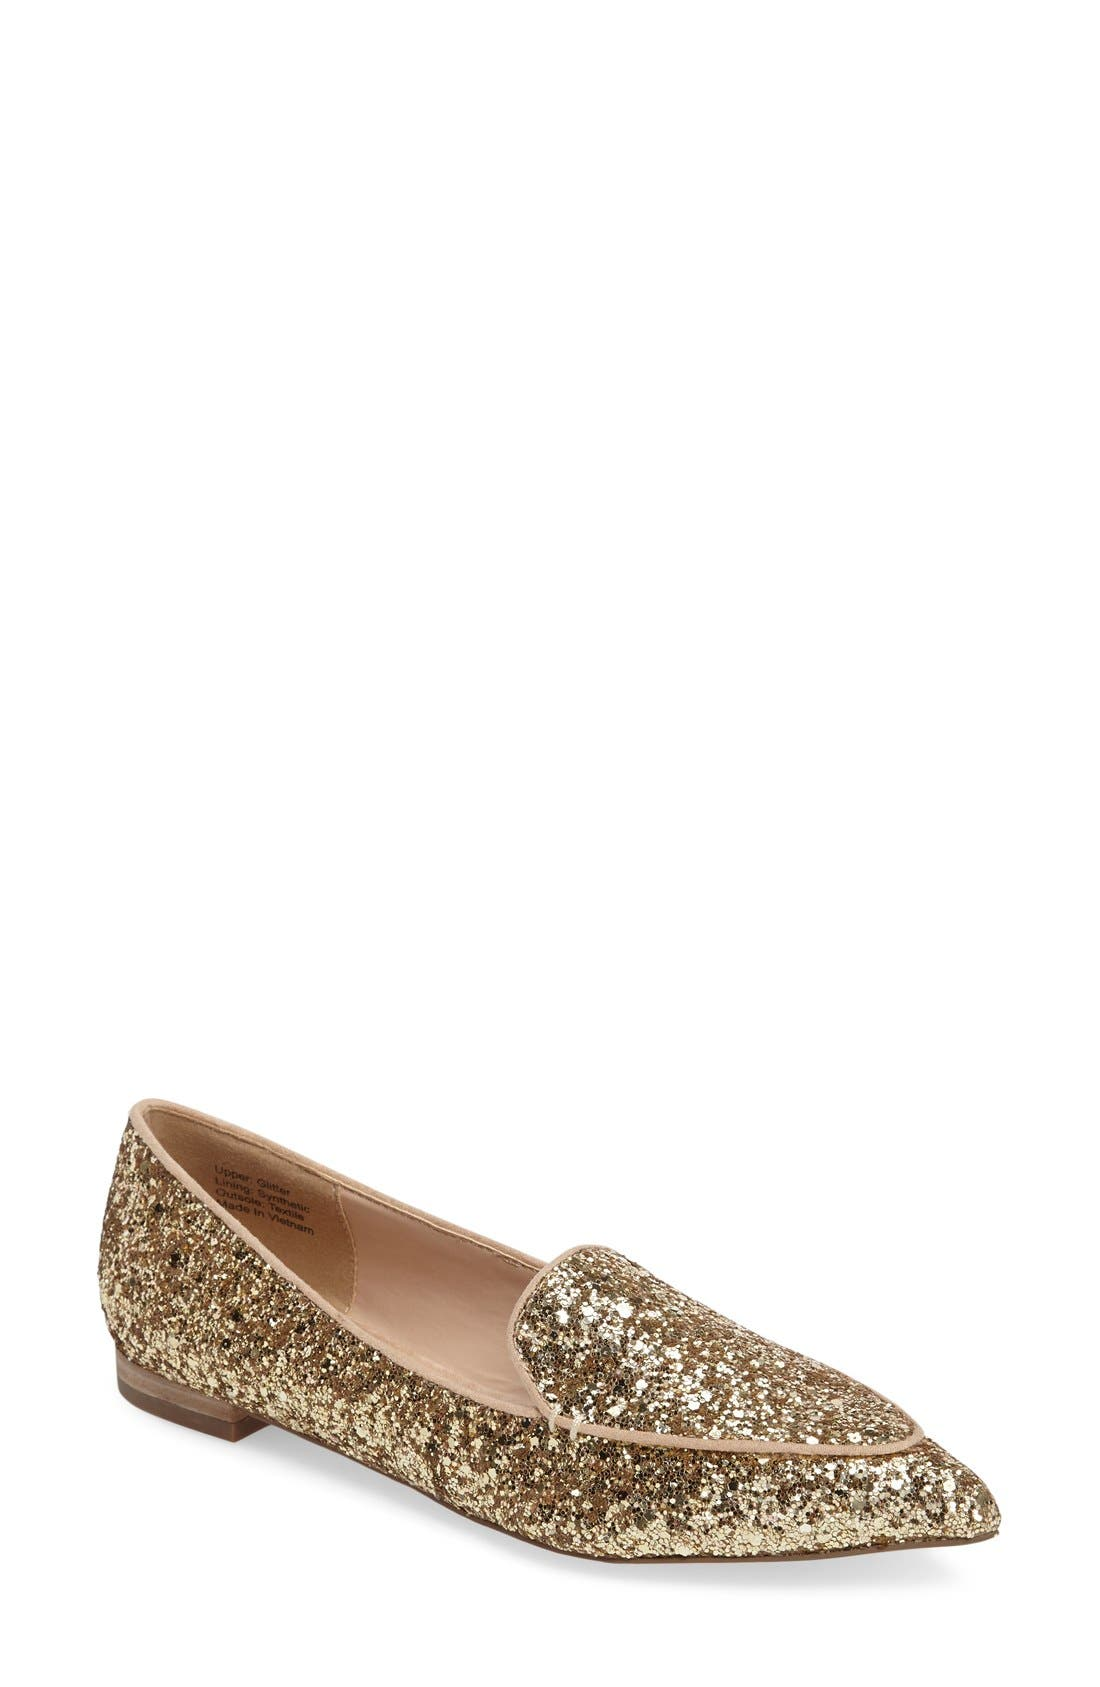 Alternate Image 1 Selected - Sole Society 'Cammila' Pointy Toe Loafer (Women)